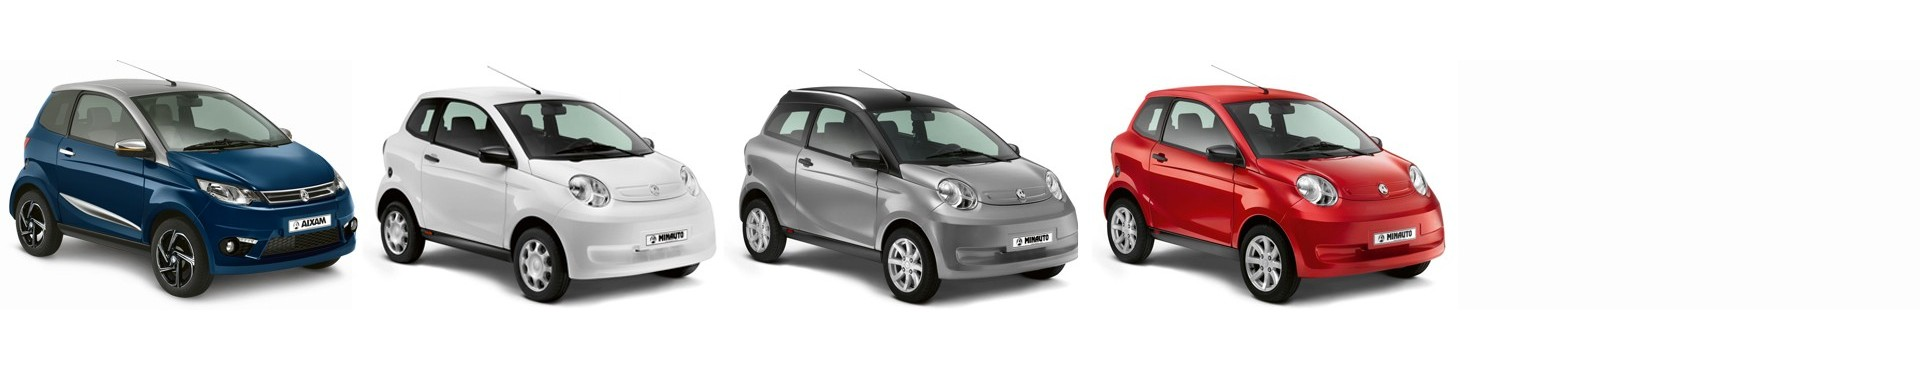 Coches Sin Carnet